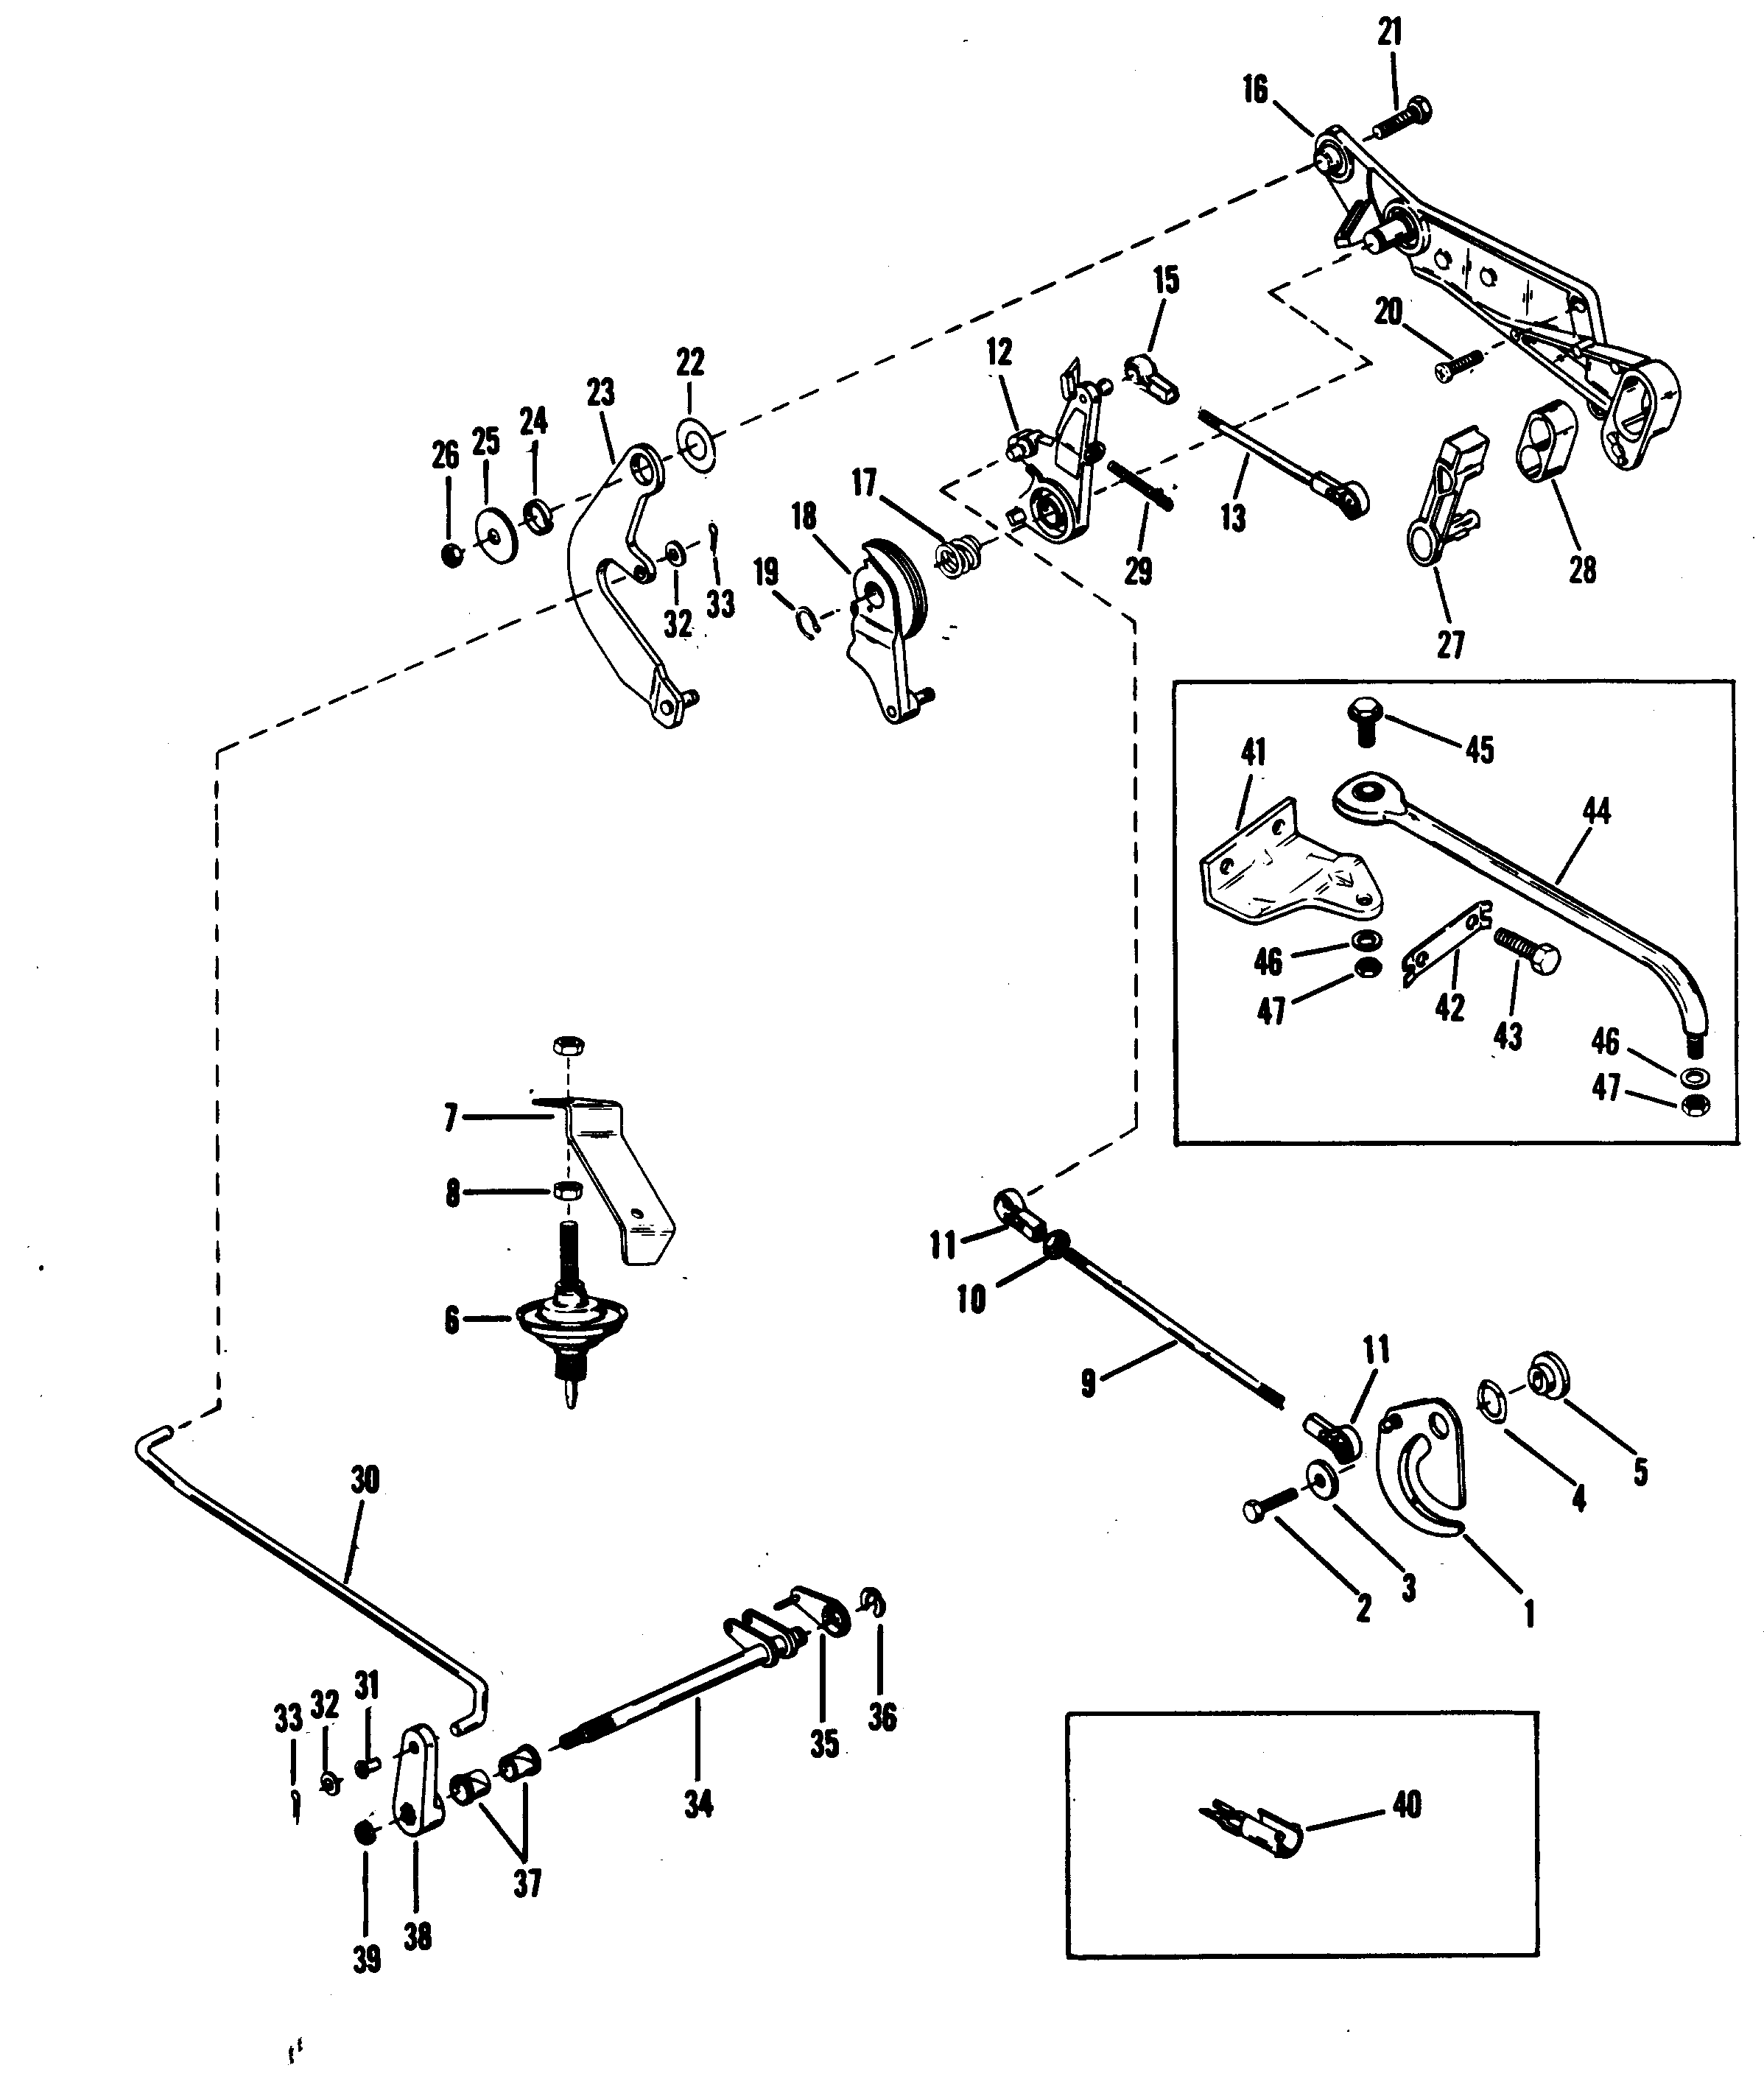 Throttle And Shift Linkage Electric For Mariner Mercury